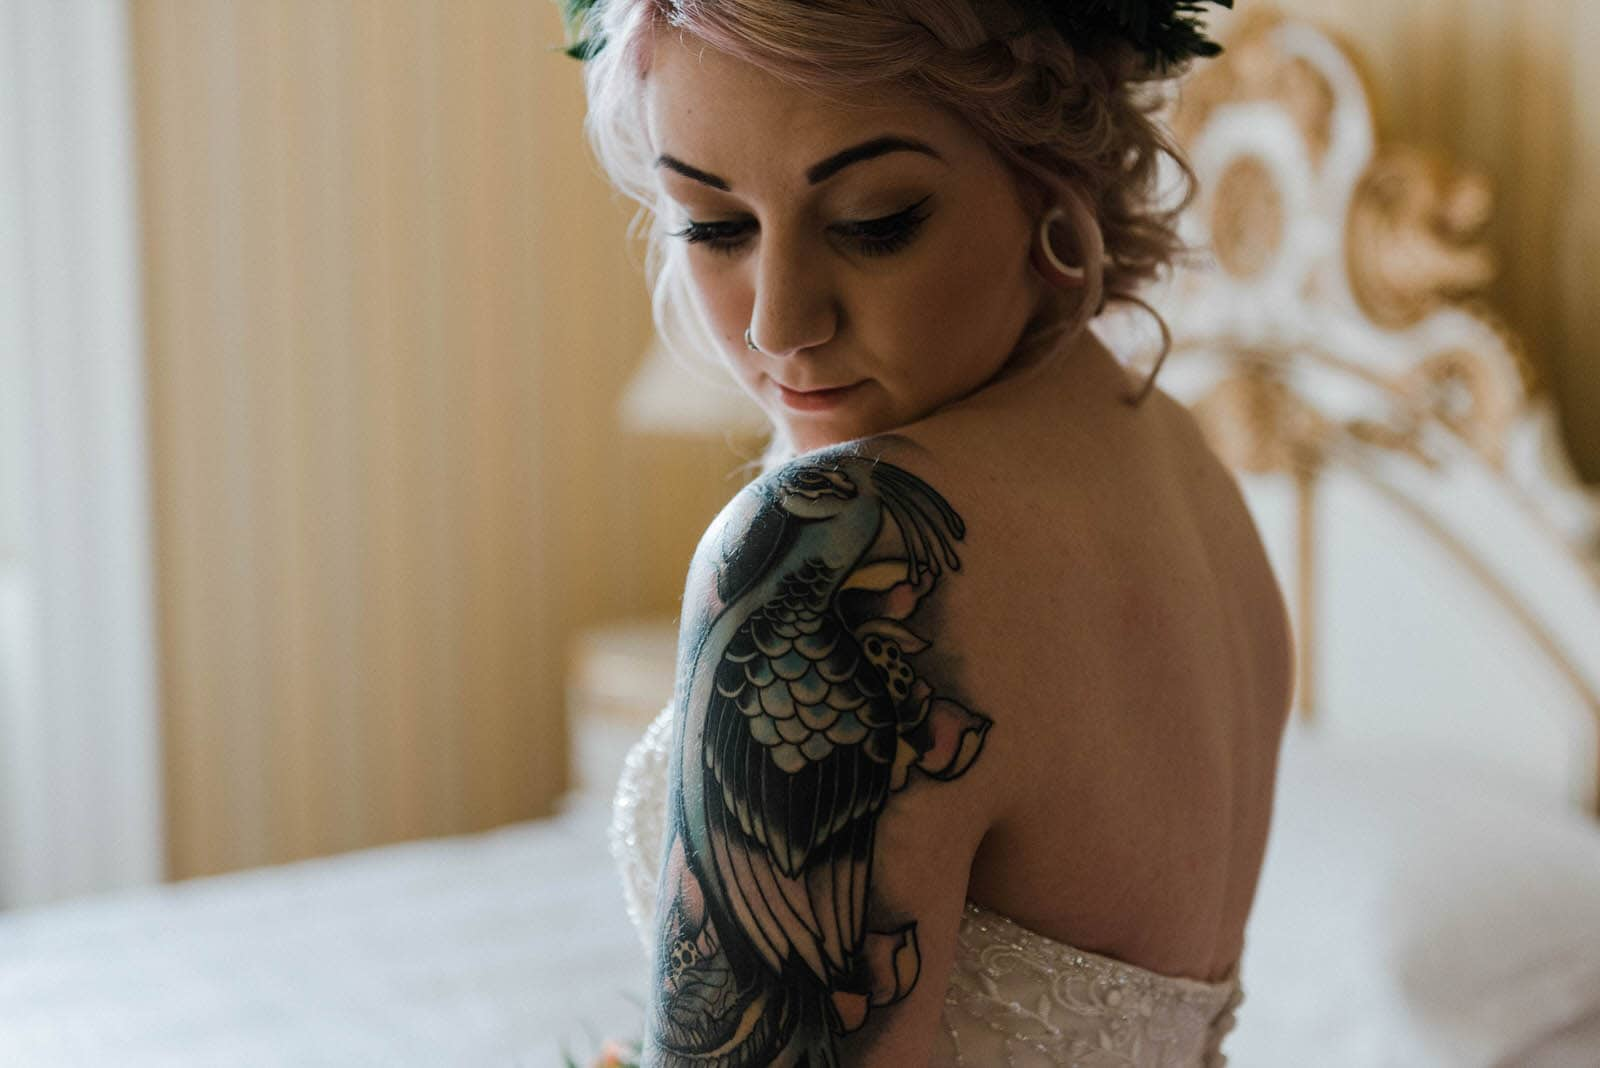 Tattoed bride at Hirst Priory wedding getting ready